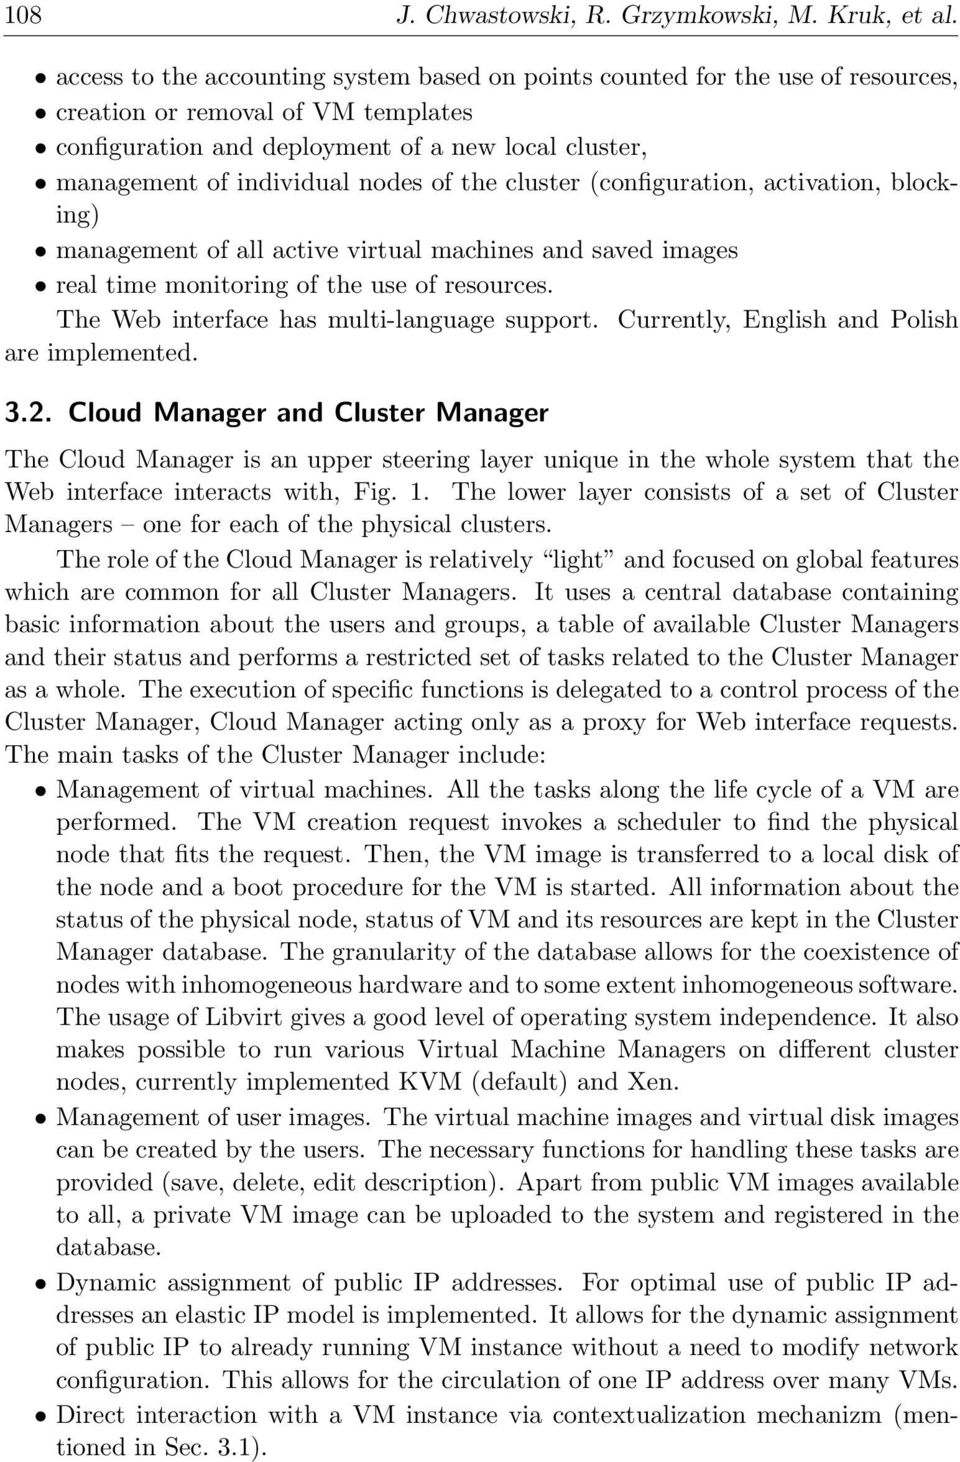 nodes of the cluster (configuration, activation, blocking) management of all active virtual machines and saved images real time monitoring of the use of resources.